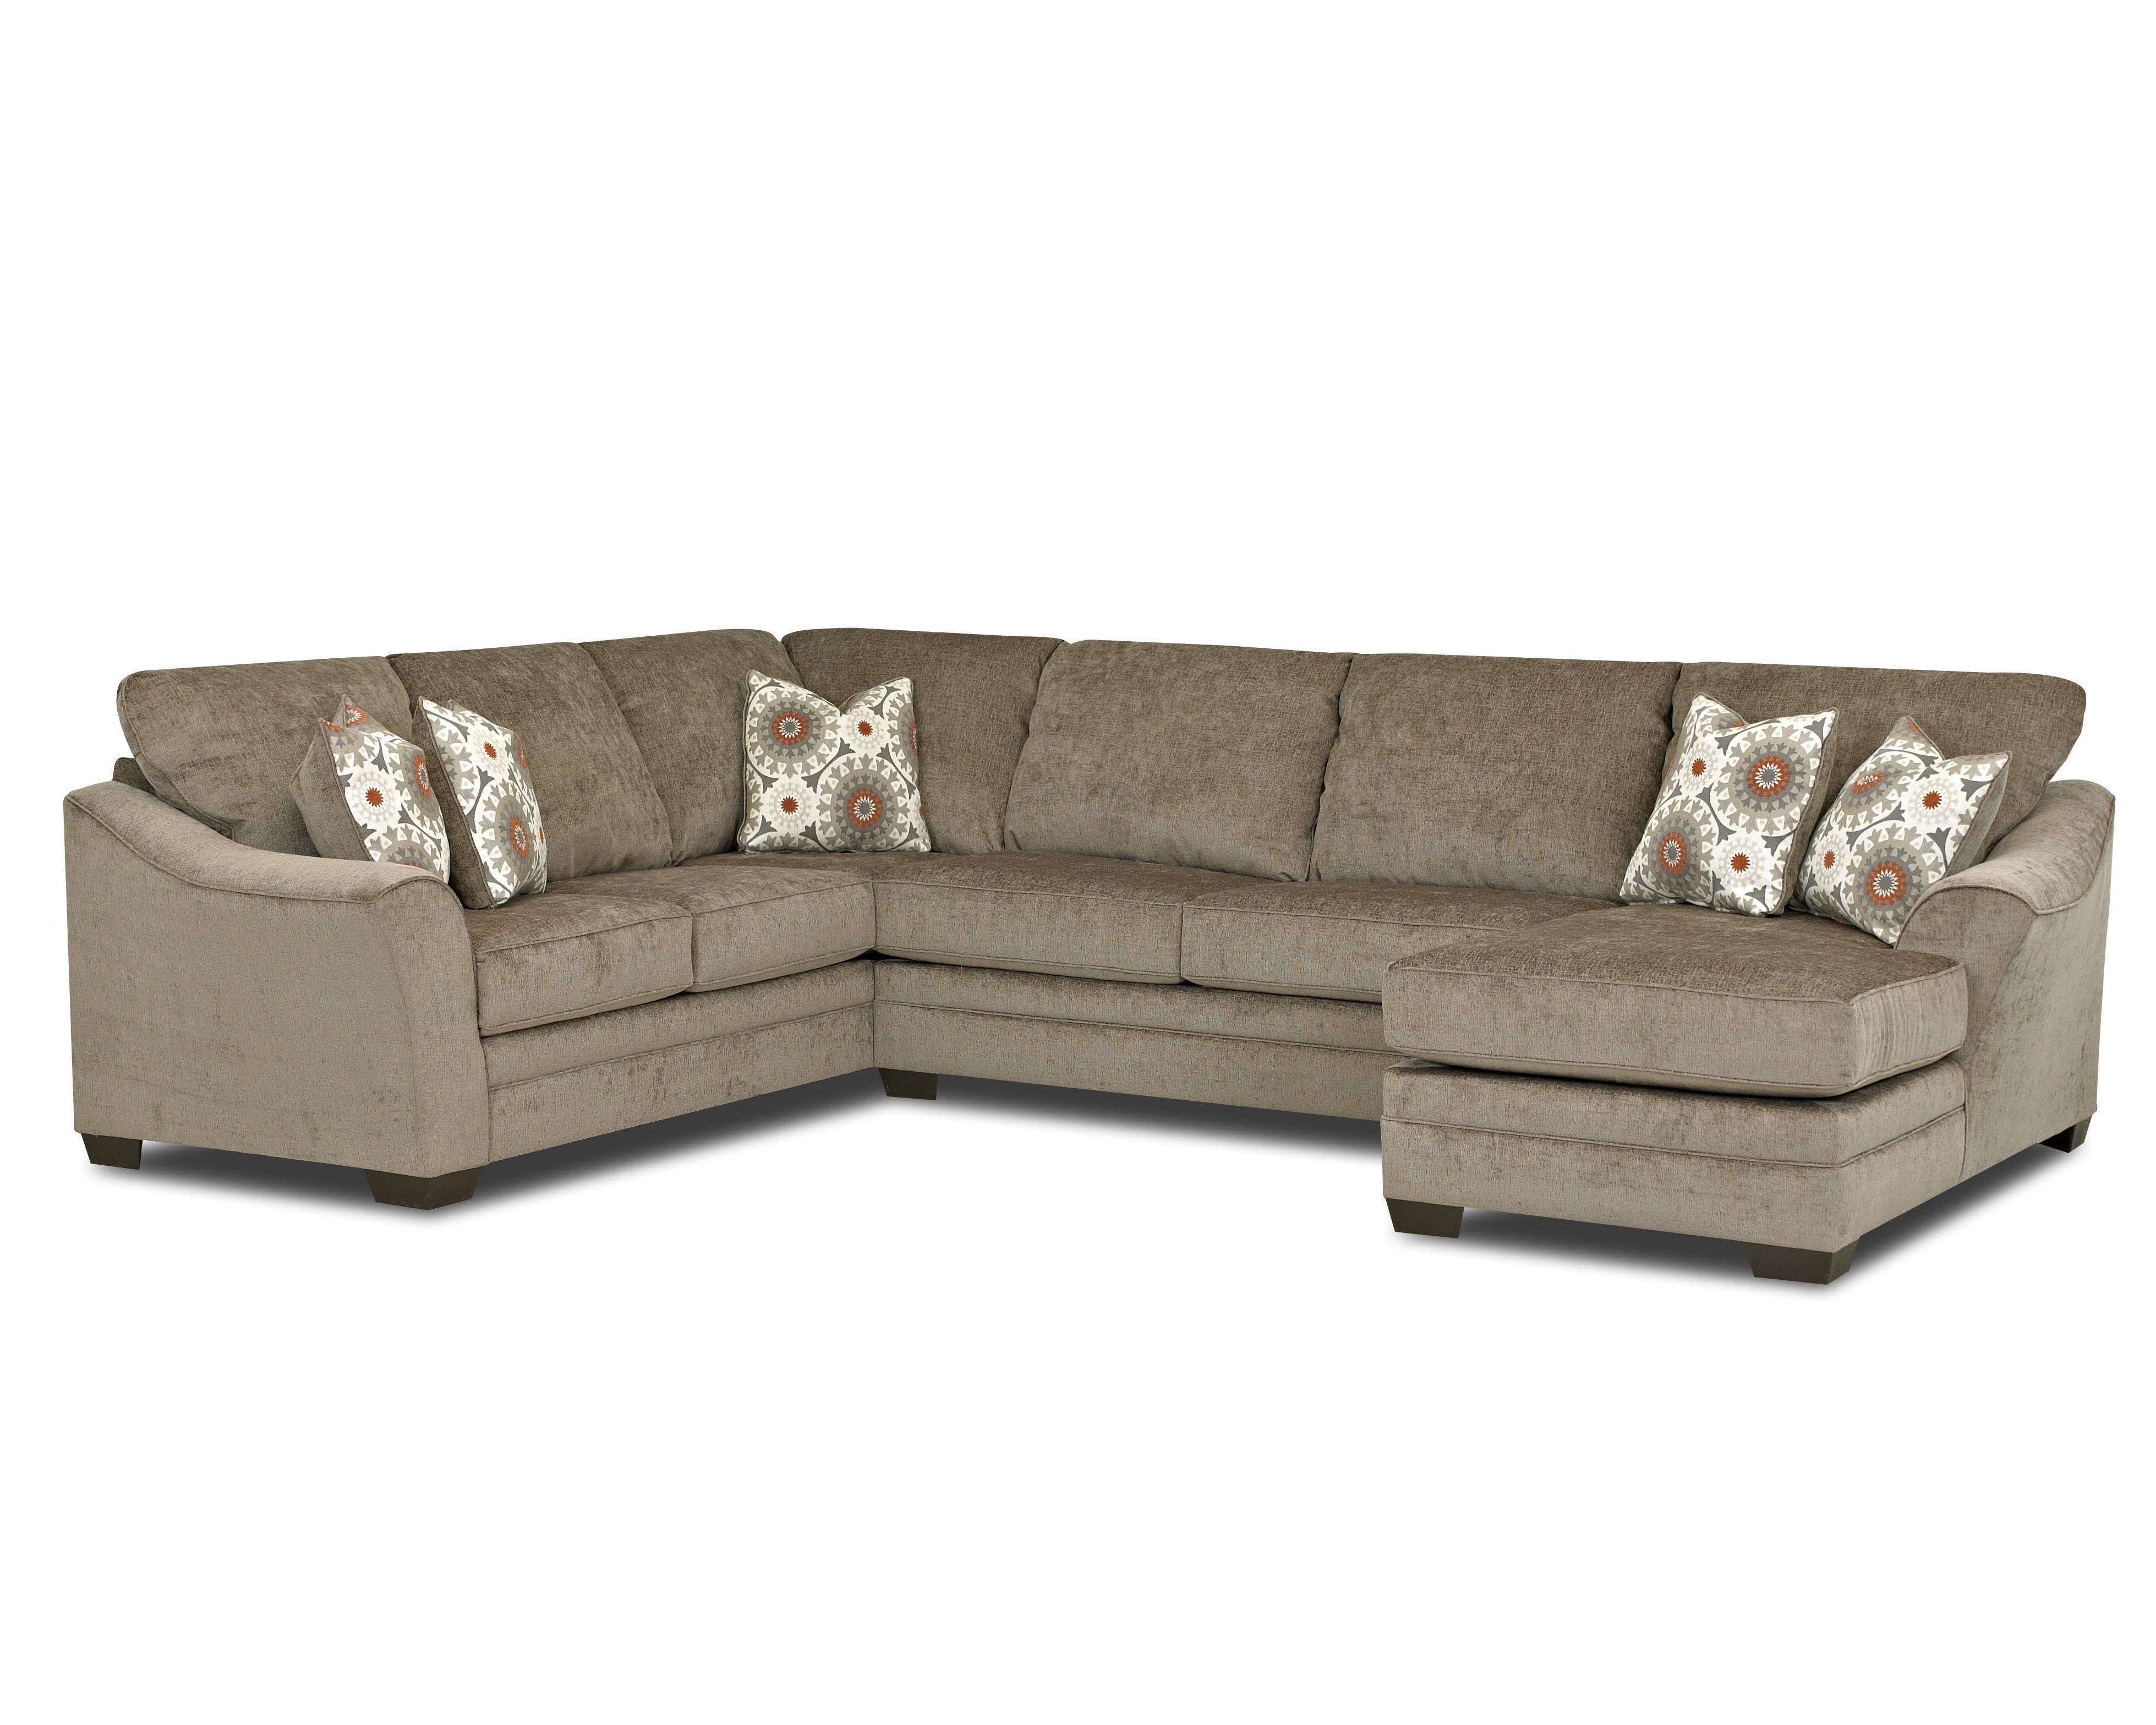 code room size piece oracle full dimensions mor sectional customer credit sofa right claire discount living facing leather incredible less groupon of chaise for furniture left card service